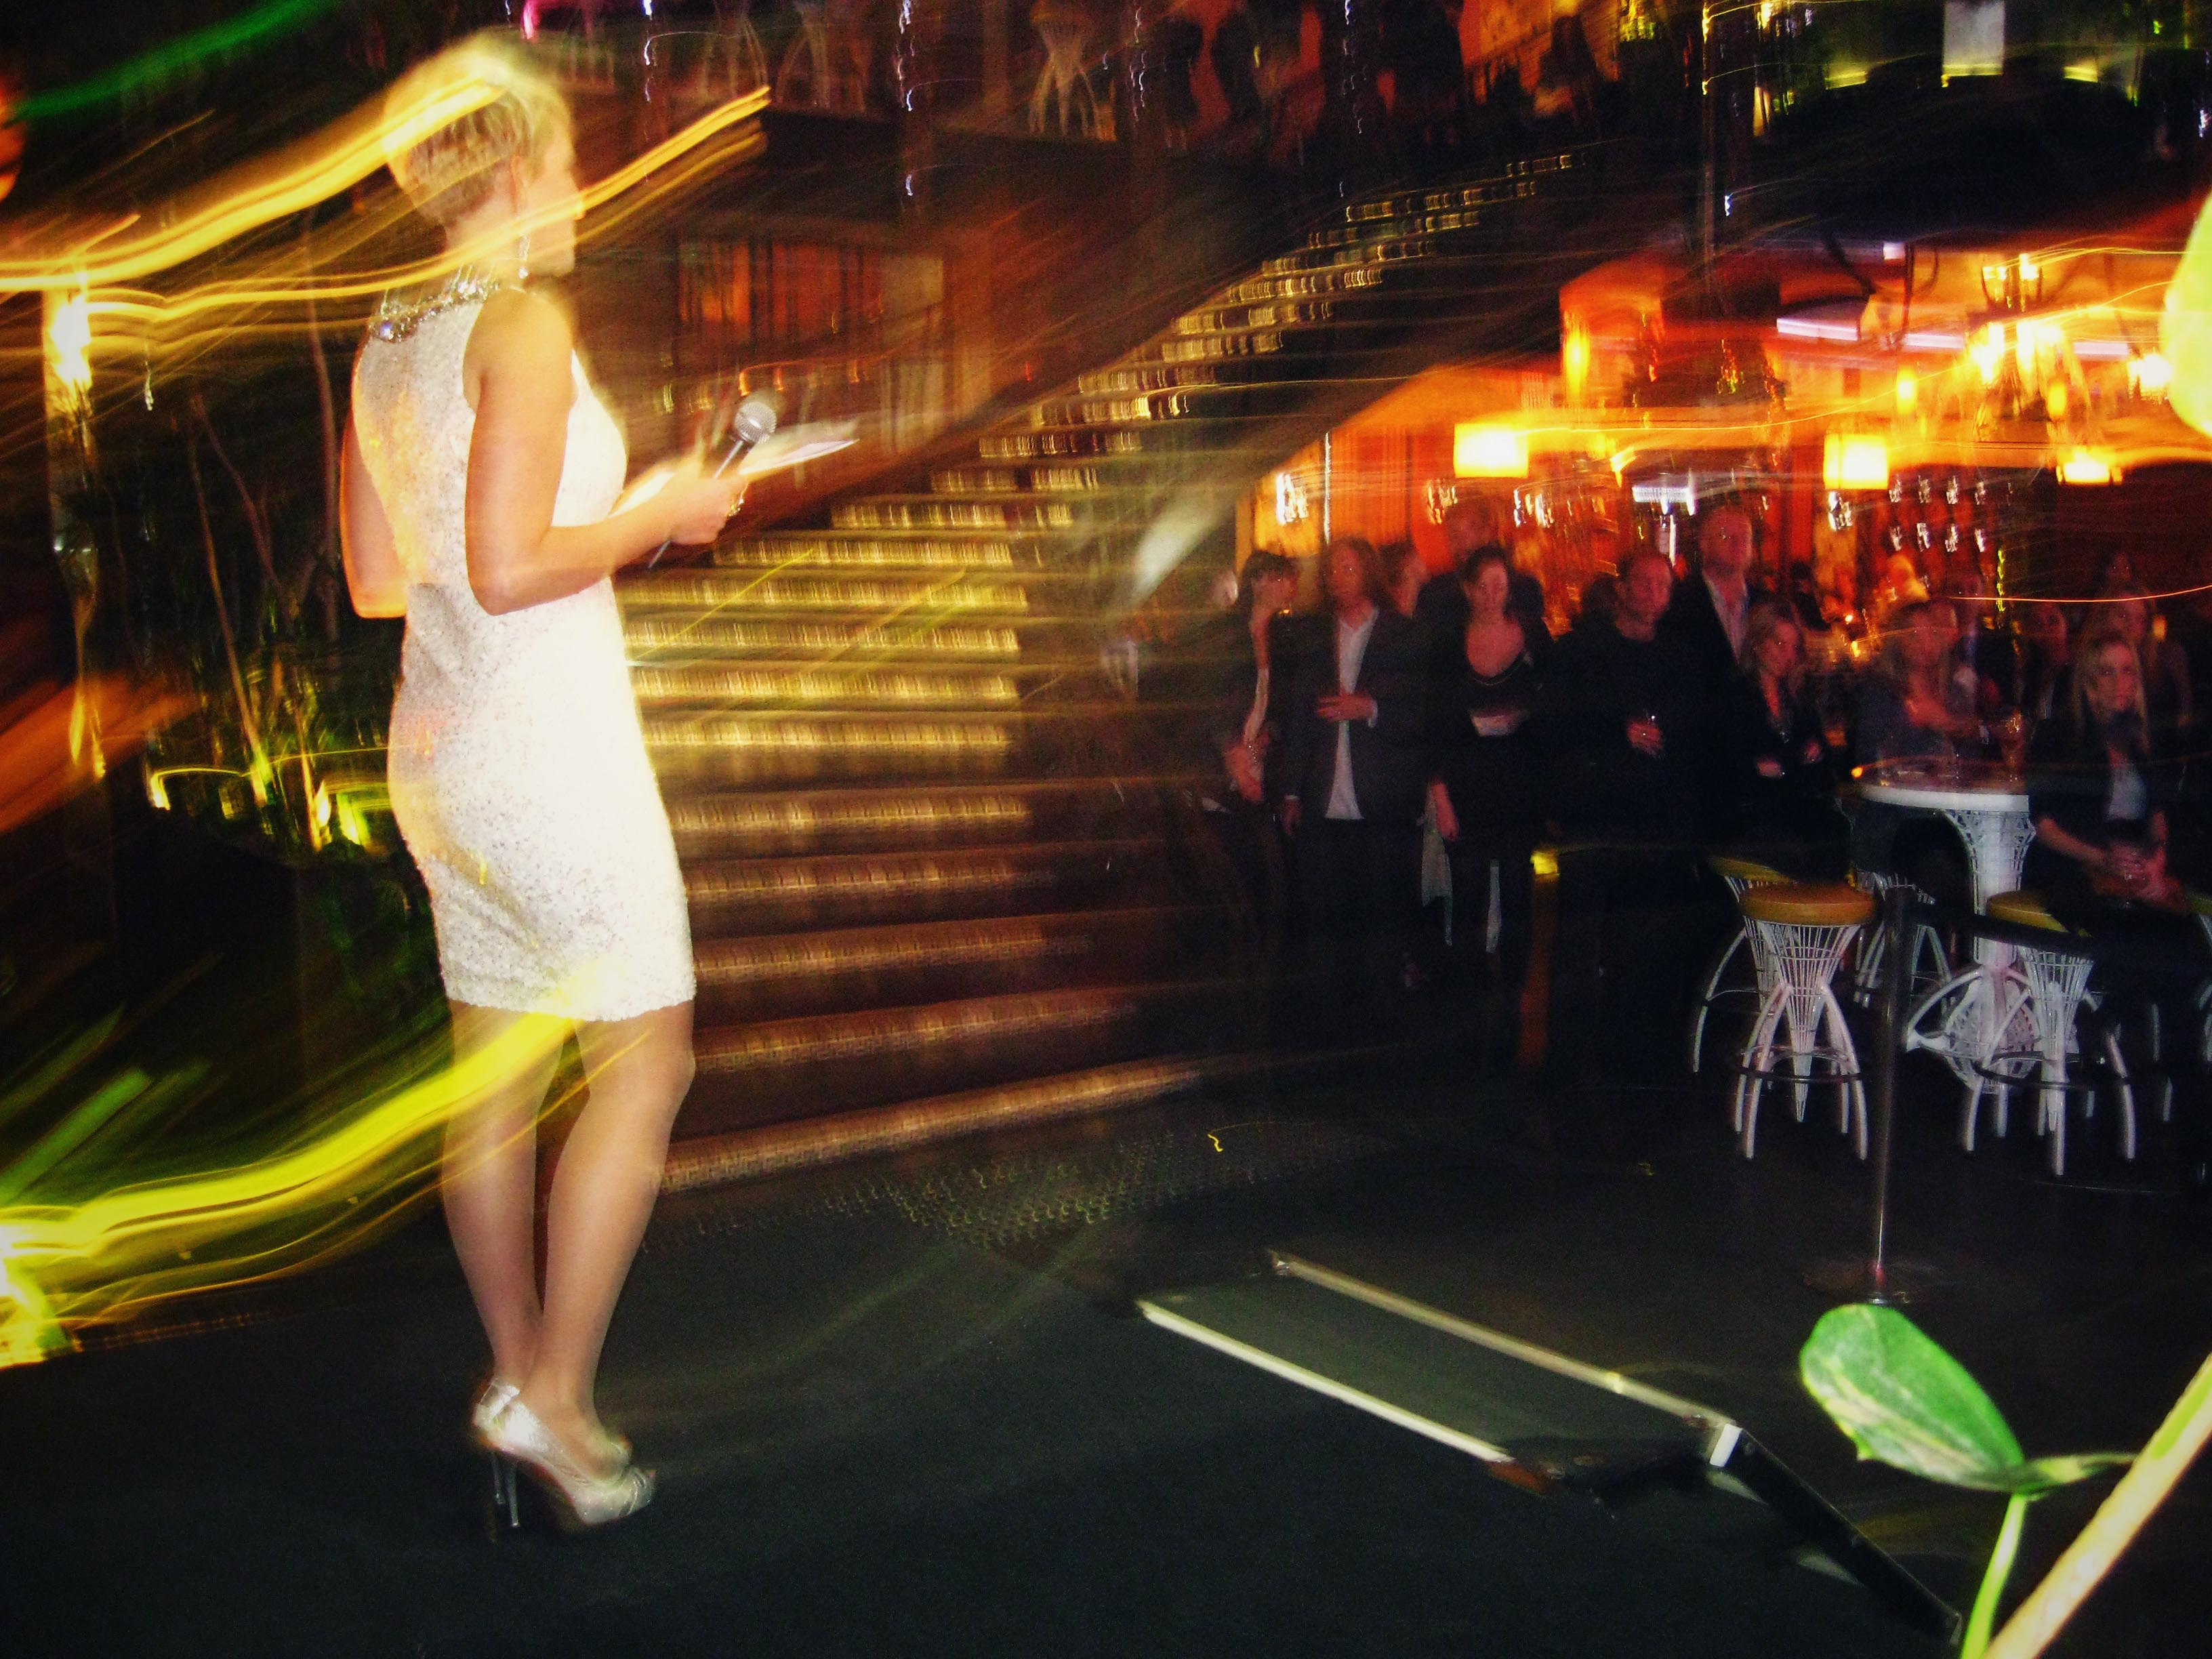 A slim white woman wearing an ivory sequinned dress stands on the stage on the left, the crowd is to the right.